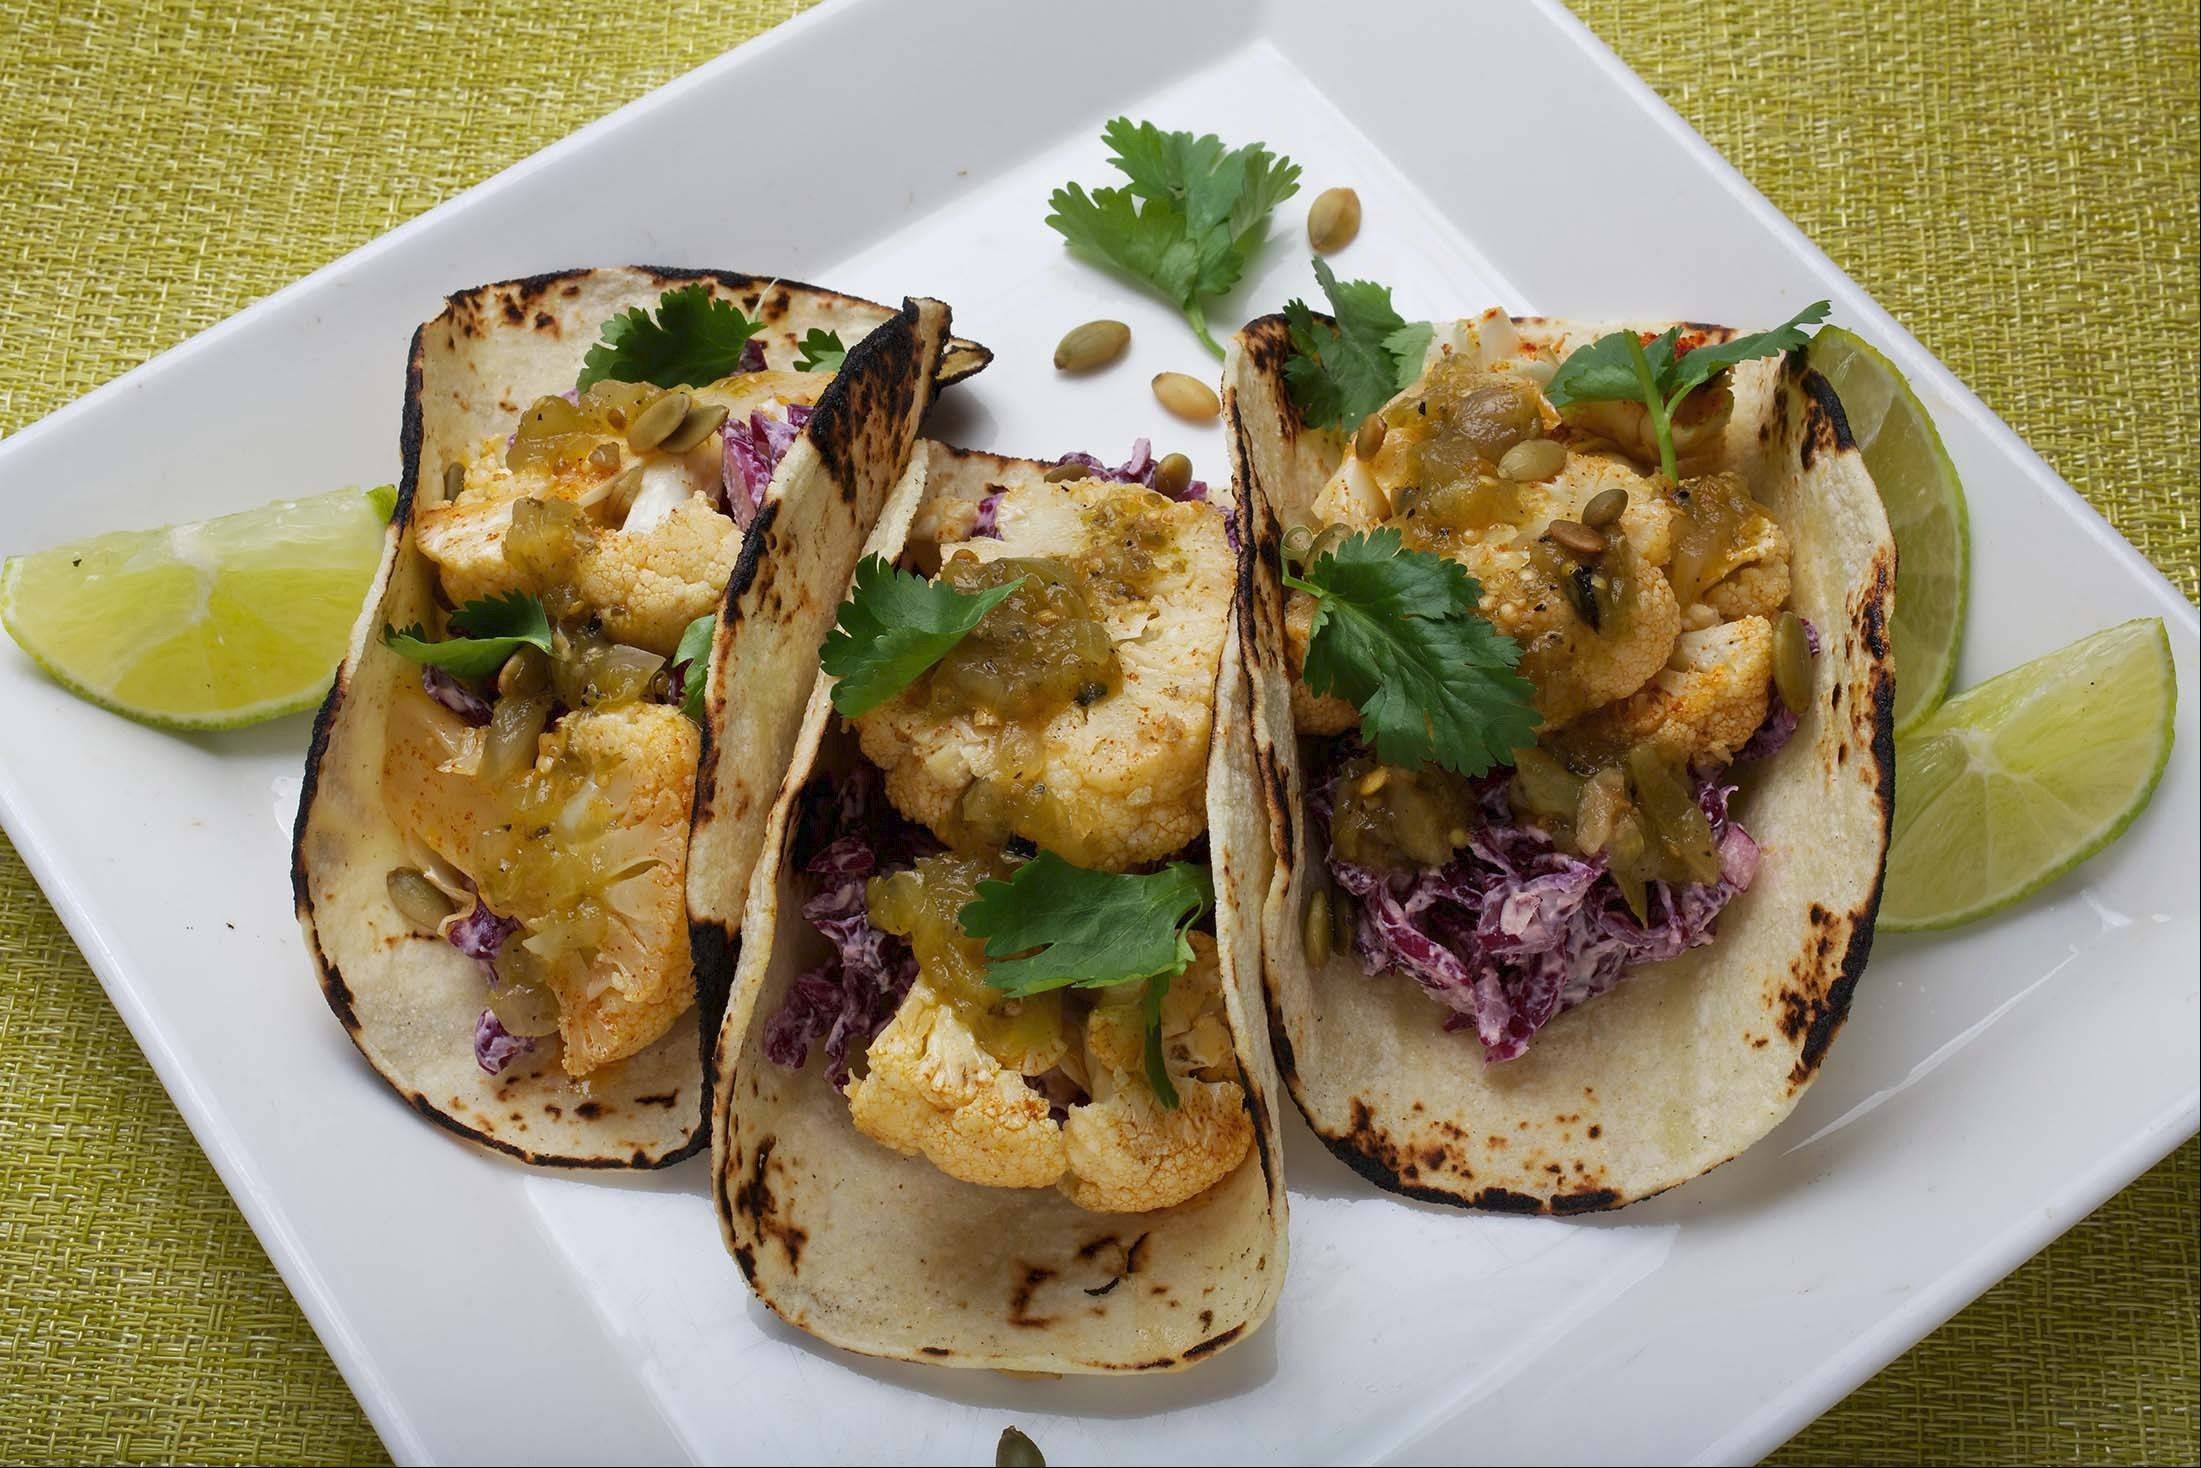 For a twist on traditional tacos, try Cauliflower Tacos With Chipotle Slaw.